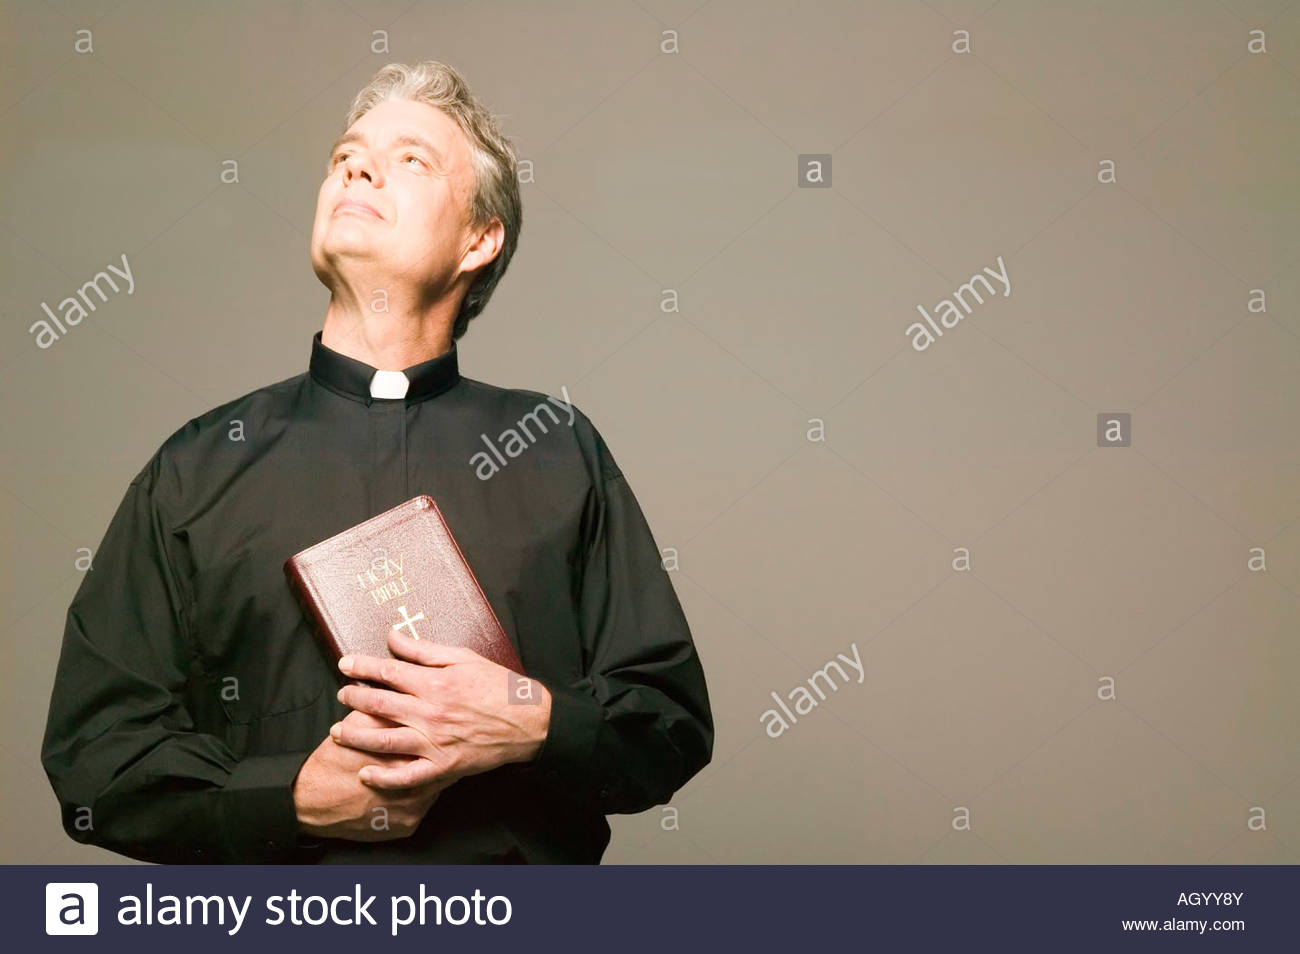 Priest holding Bible - Stock Image